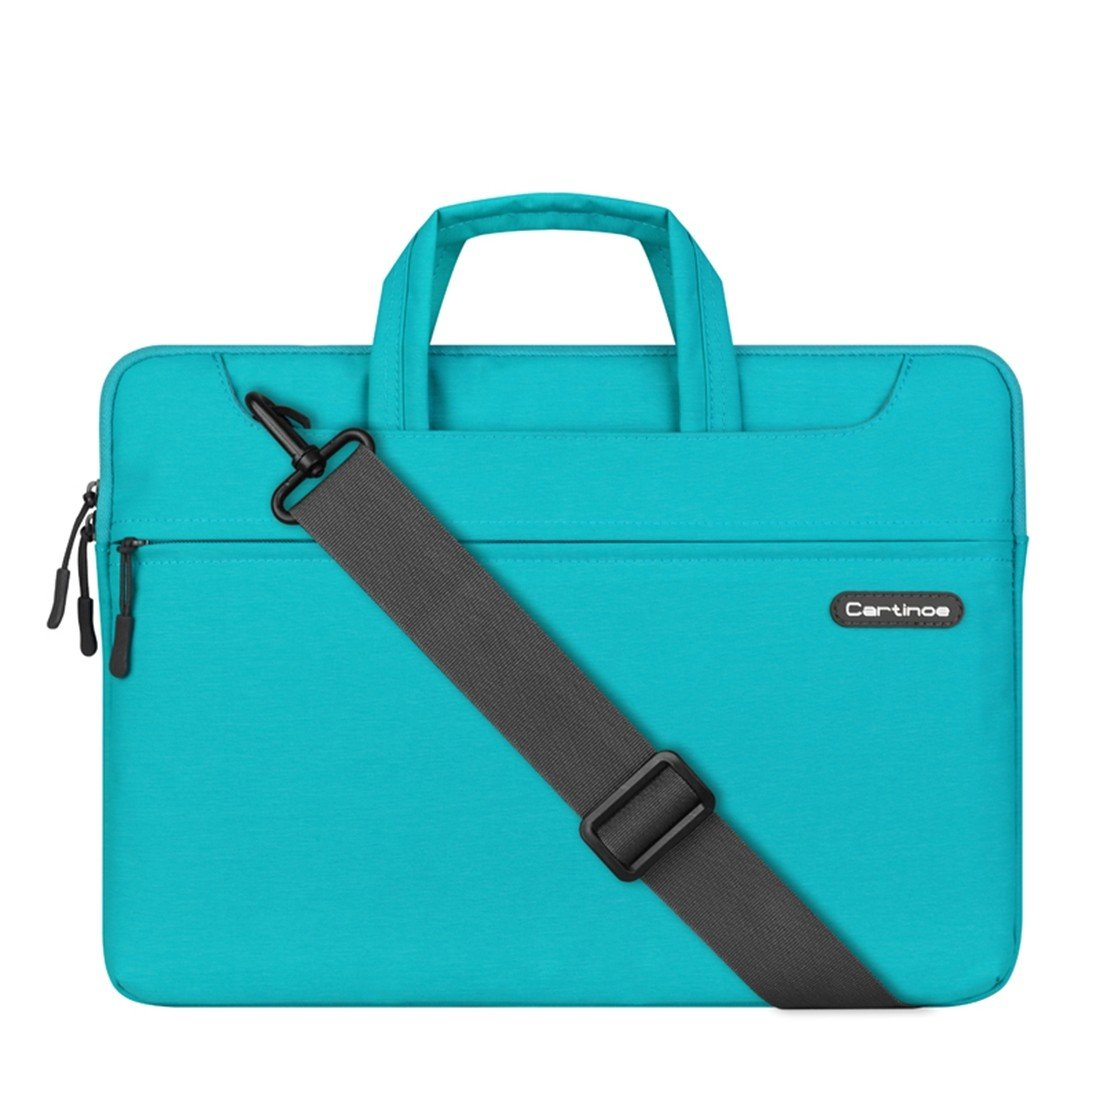 cartinoe-starry-series-laptoptas-sleeve-154-inch-turquoise-b85